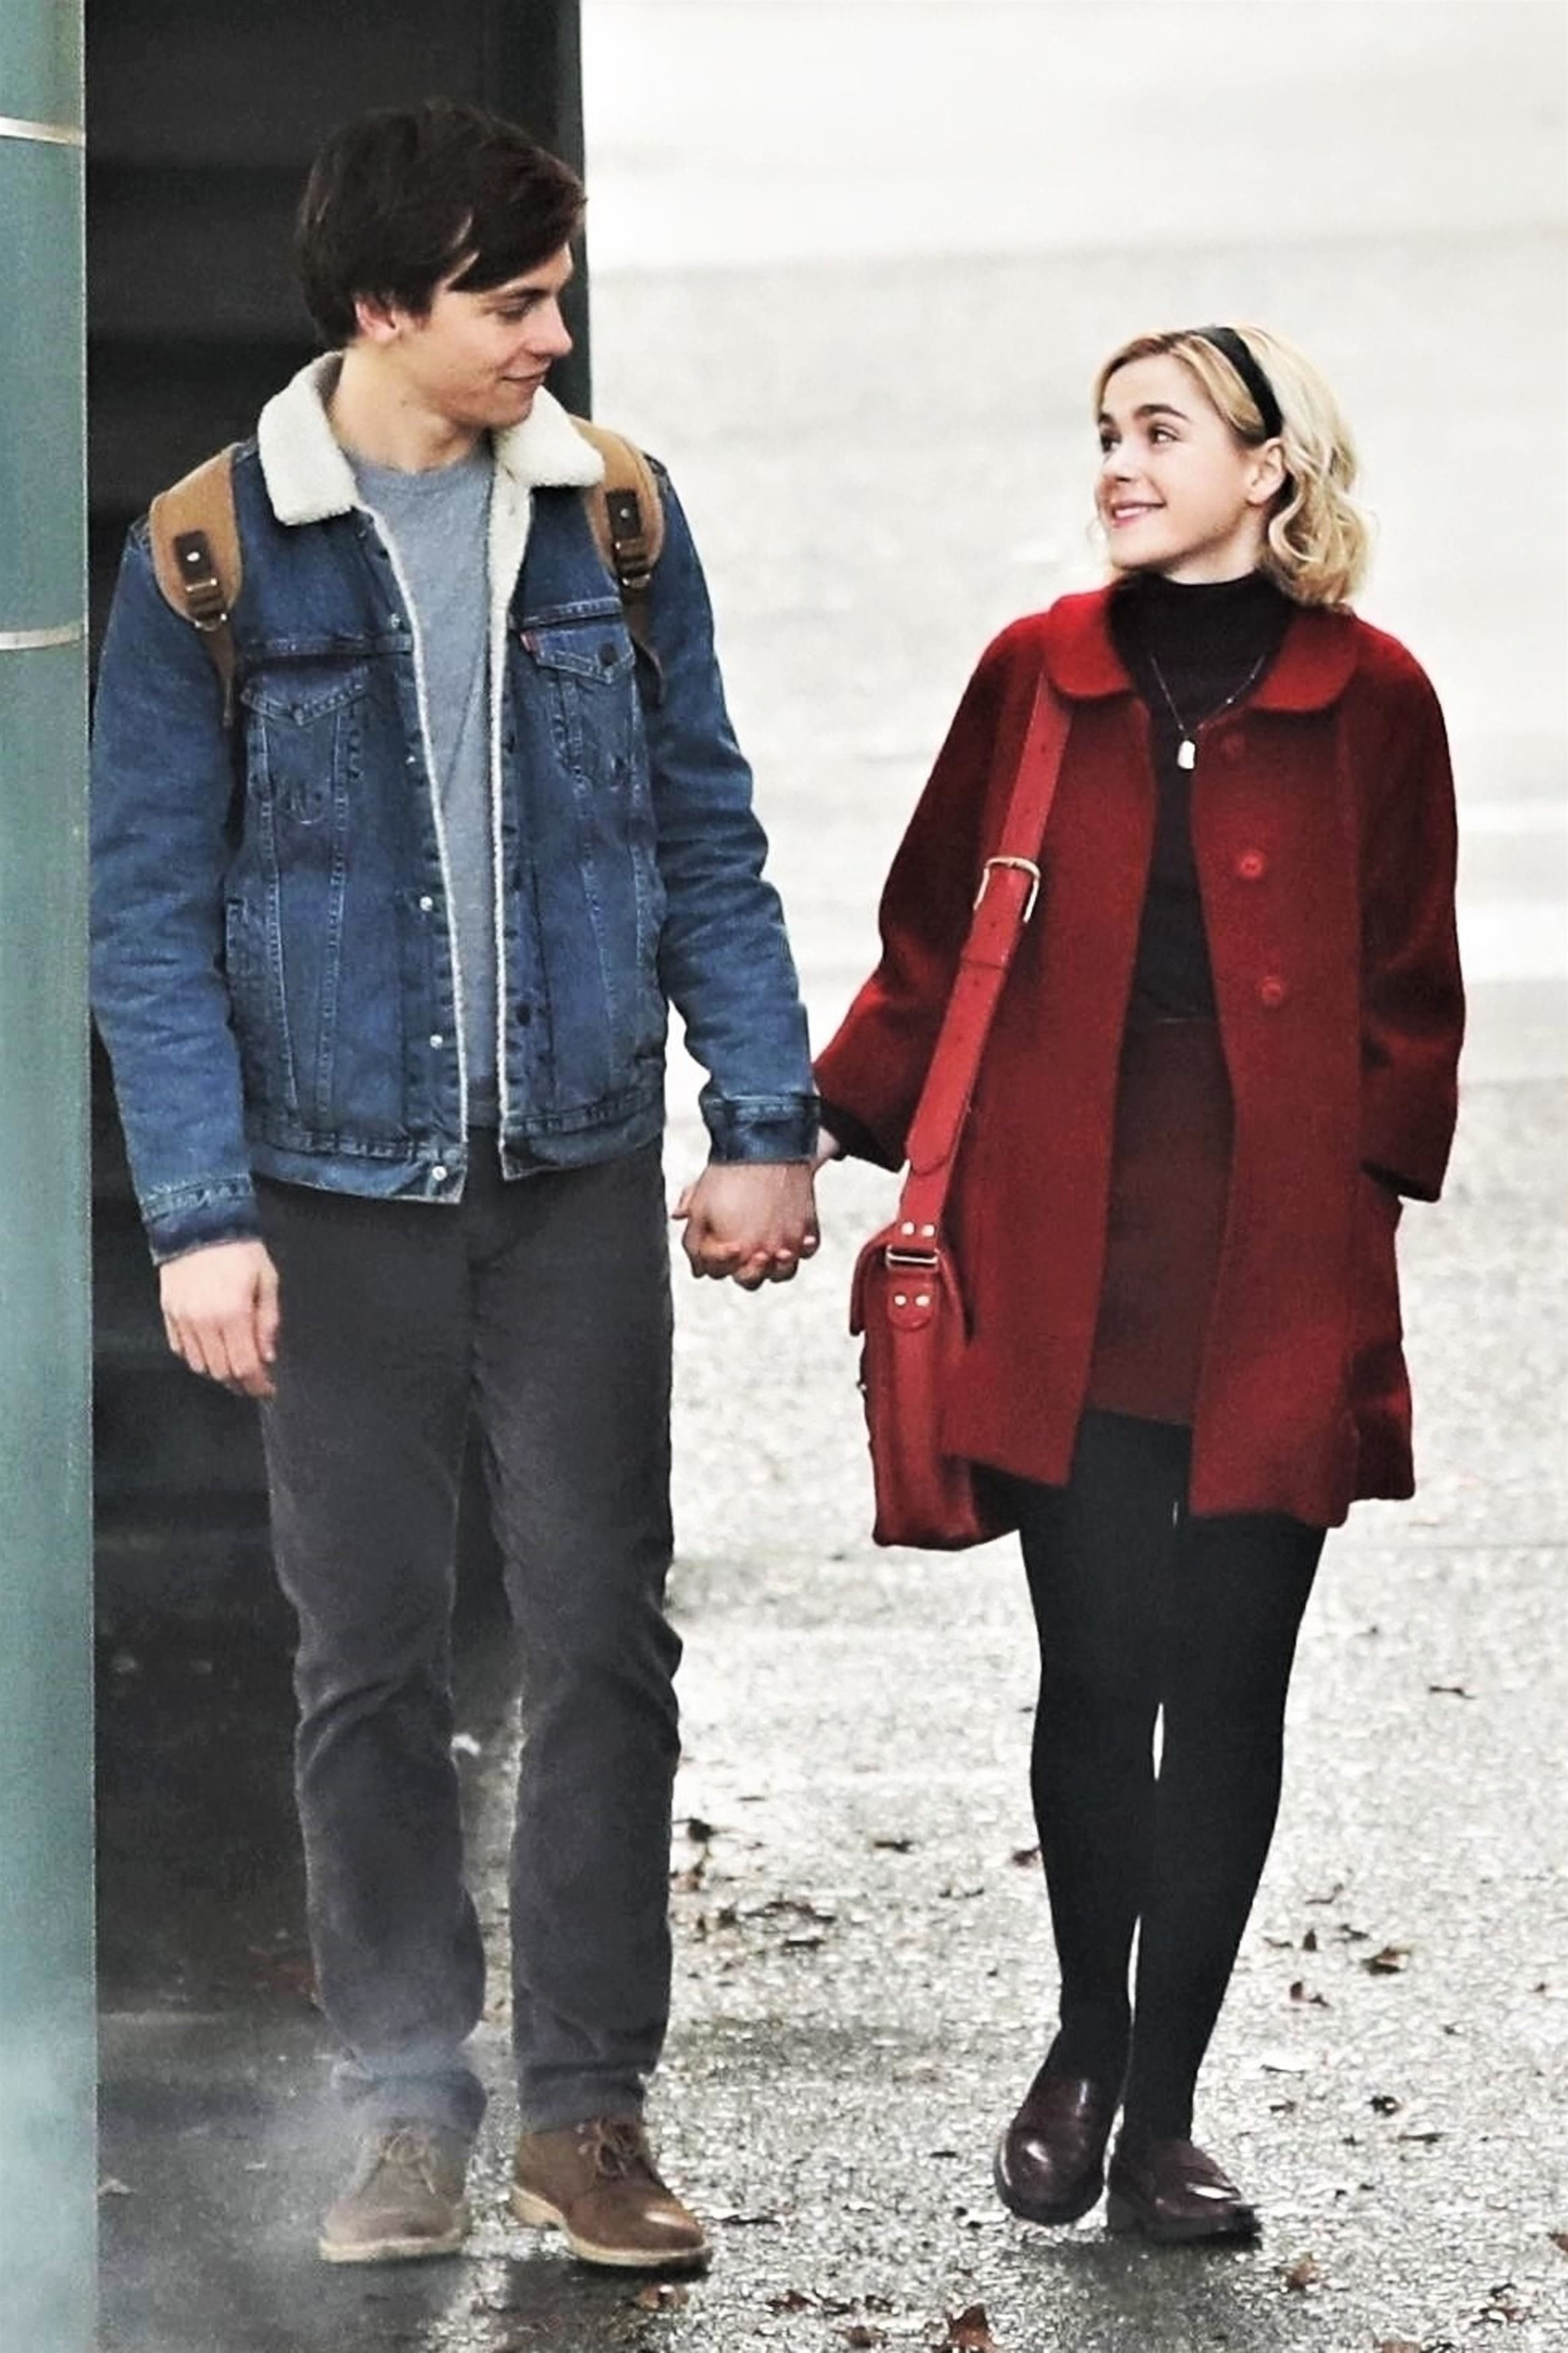 Kiernan Shipka And Ross Lynch As Netflix S Sabrina And Harvey First Chilling Adventures Of Sabrina Set Photos